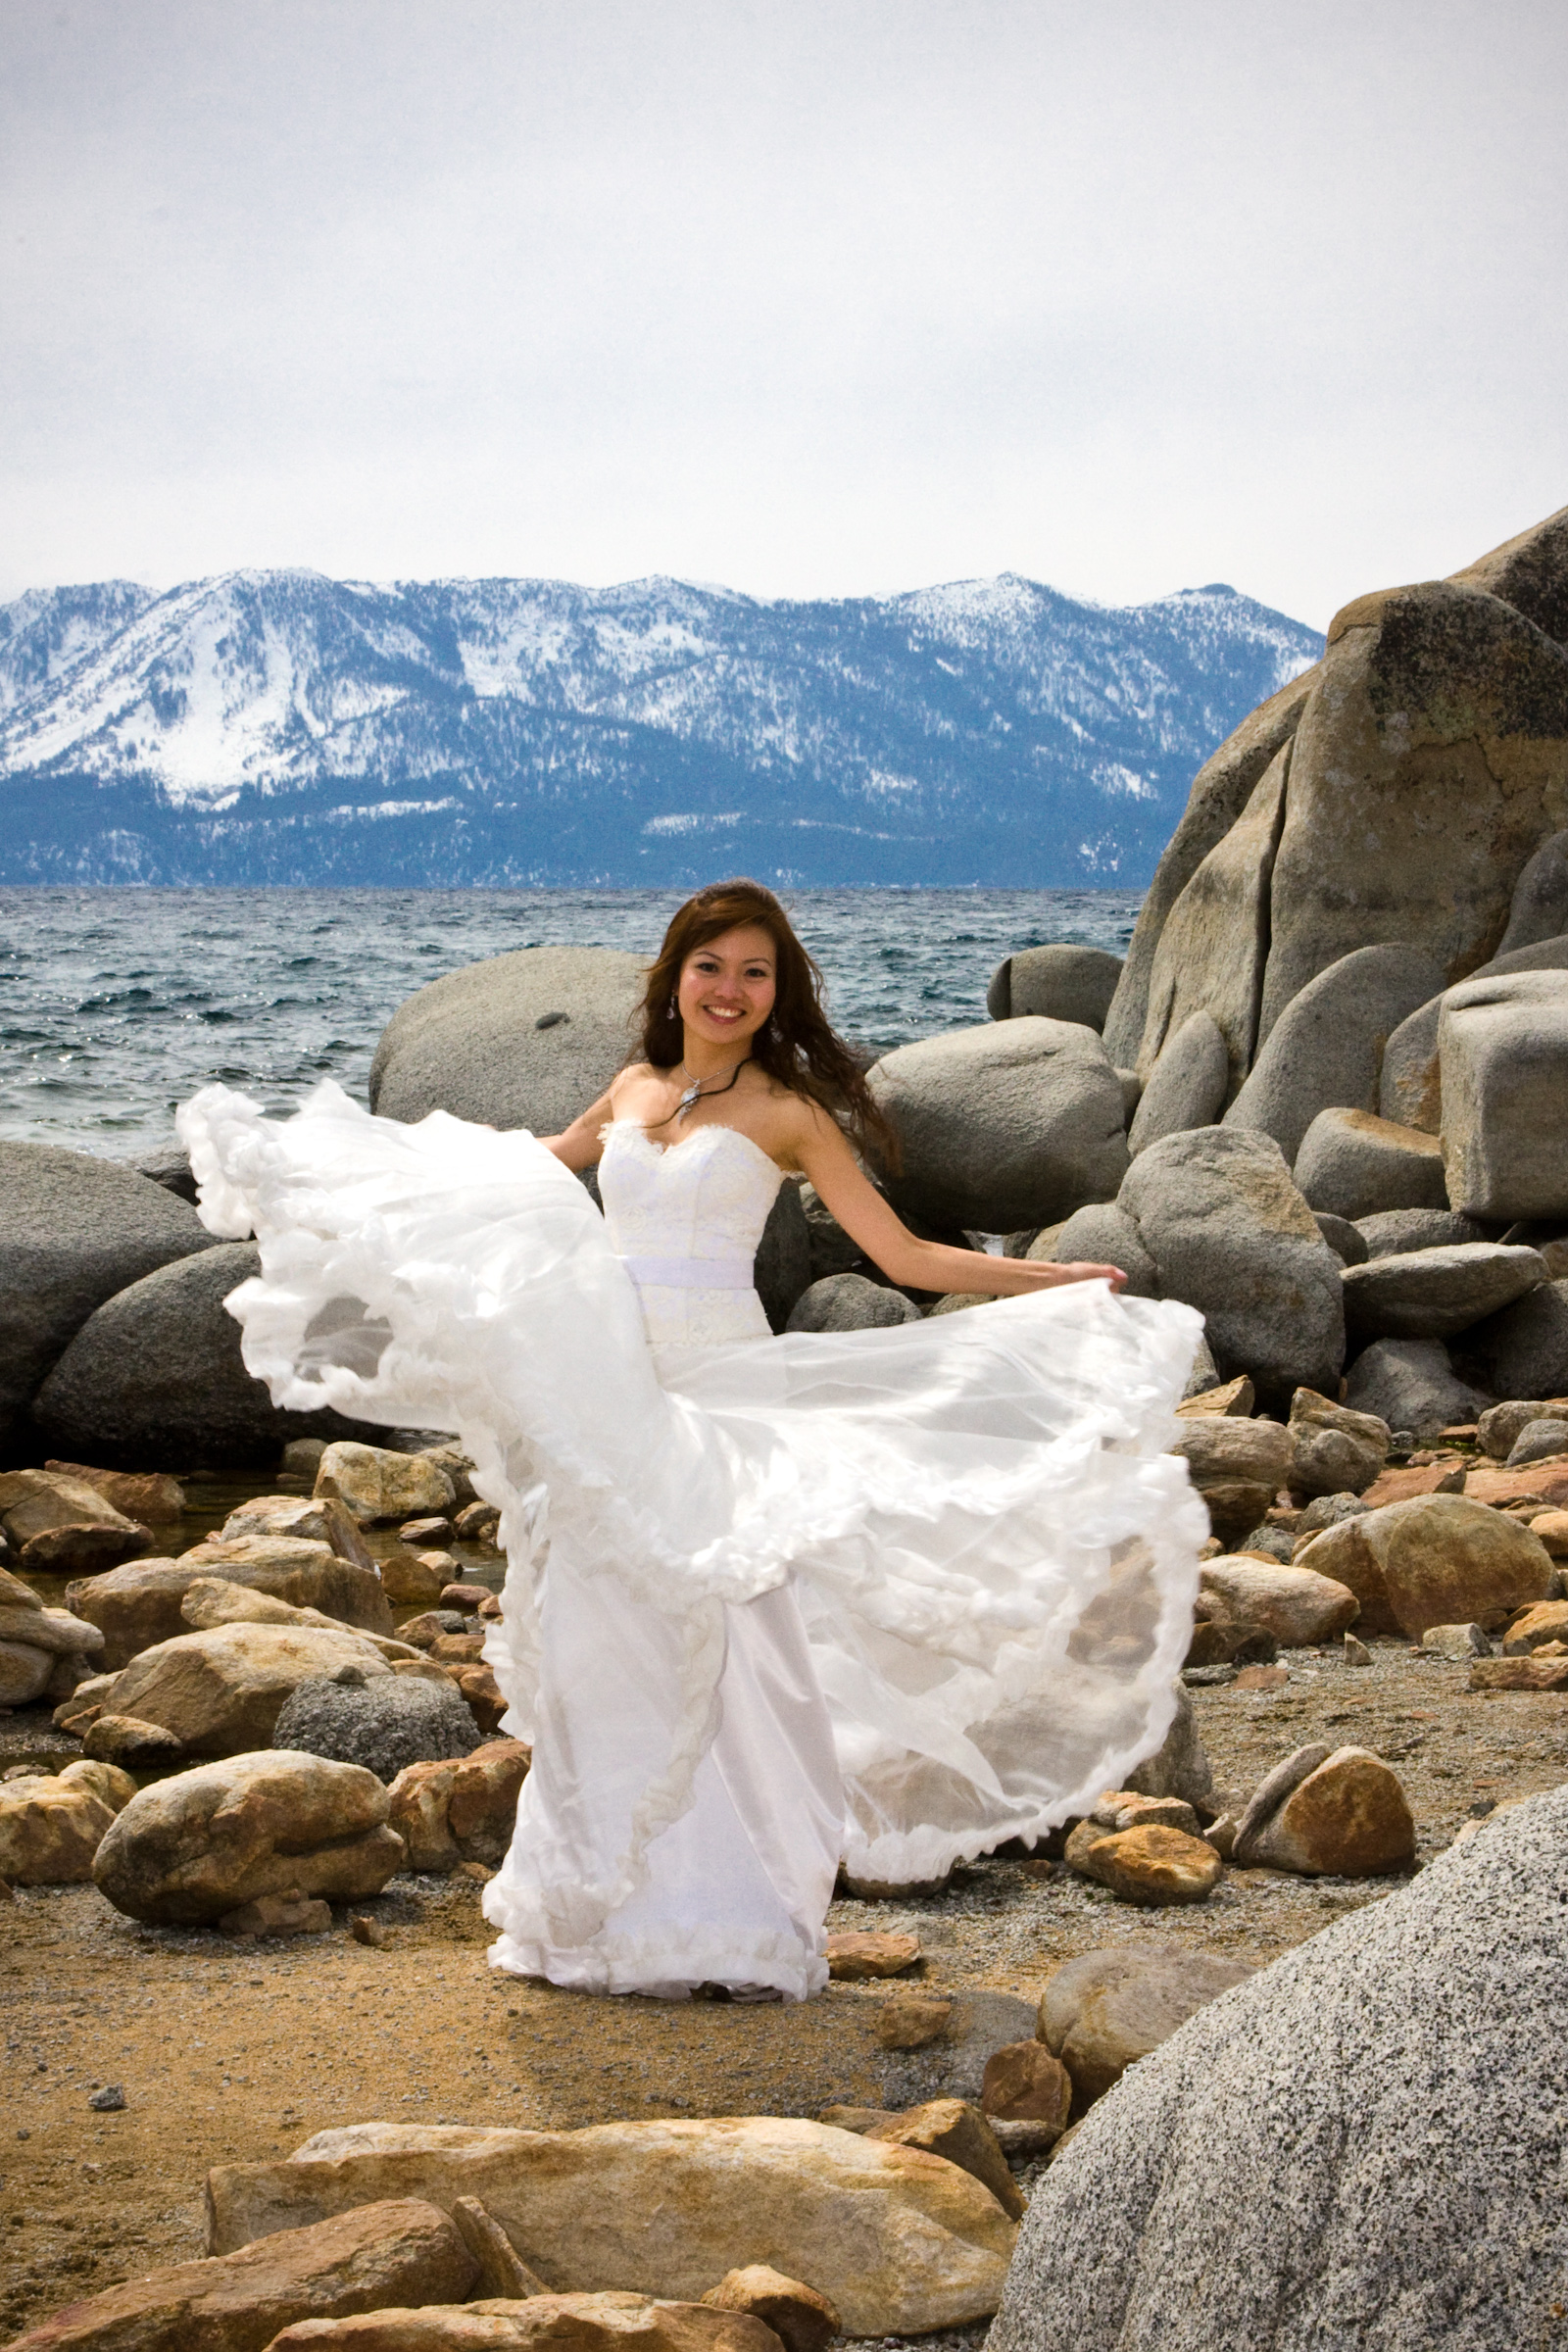 Celeste in her multiple layered organza wedding dress